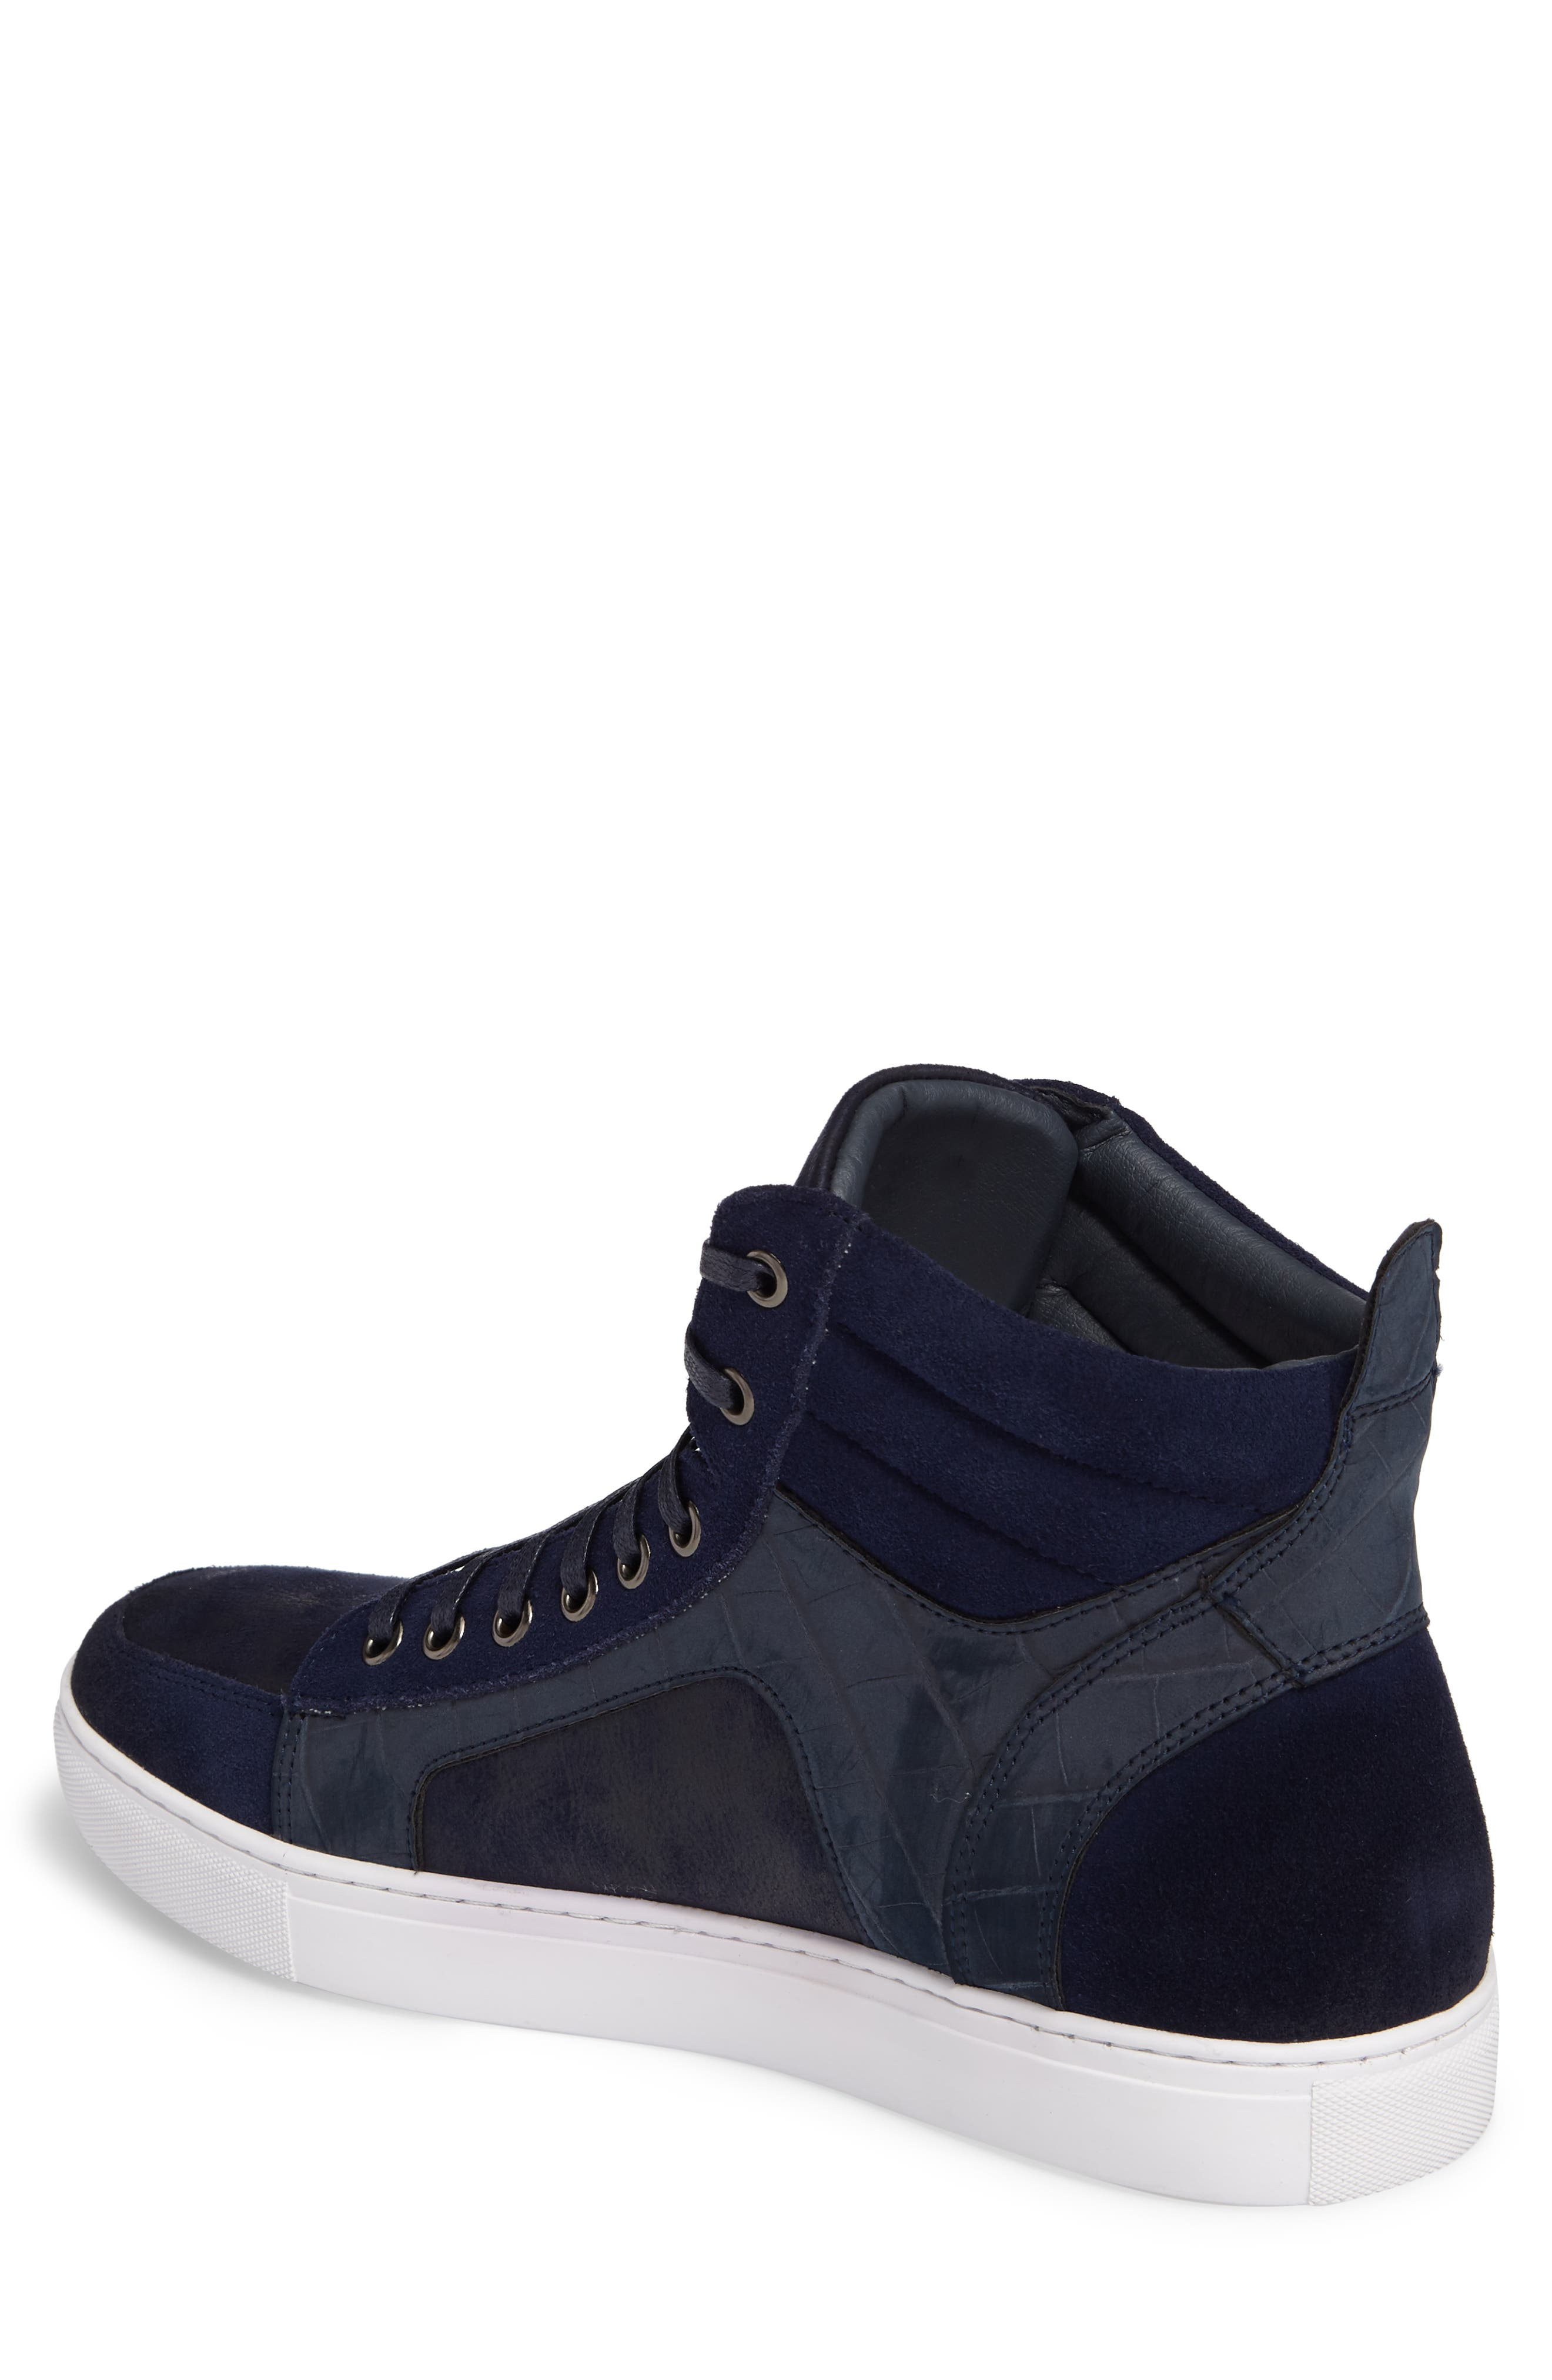 Makin Sneaker,                             Alternate thumbnail 2, color,                             Navy Suede